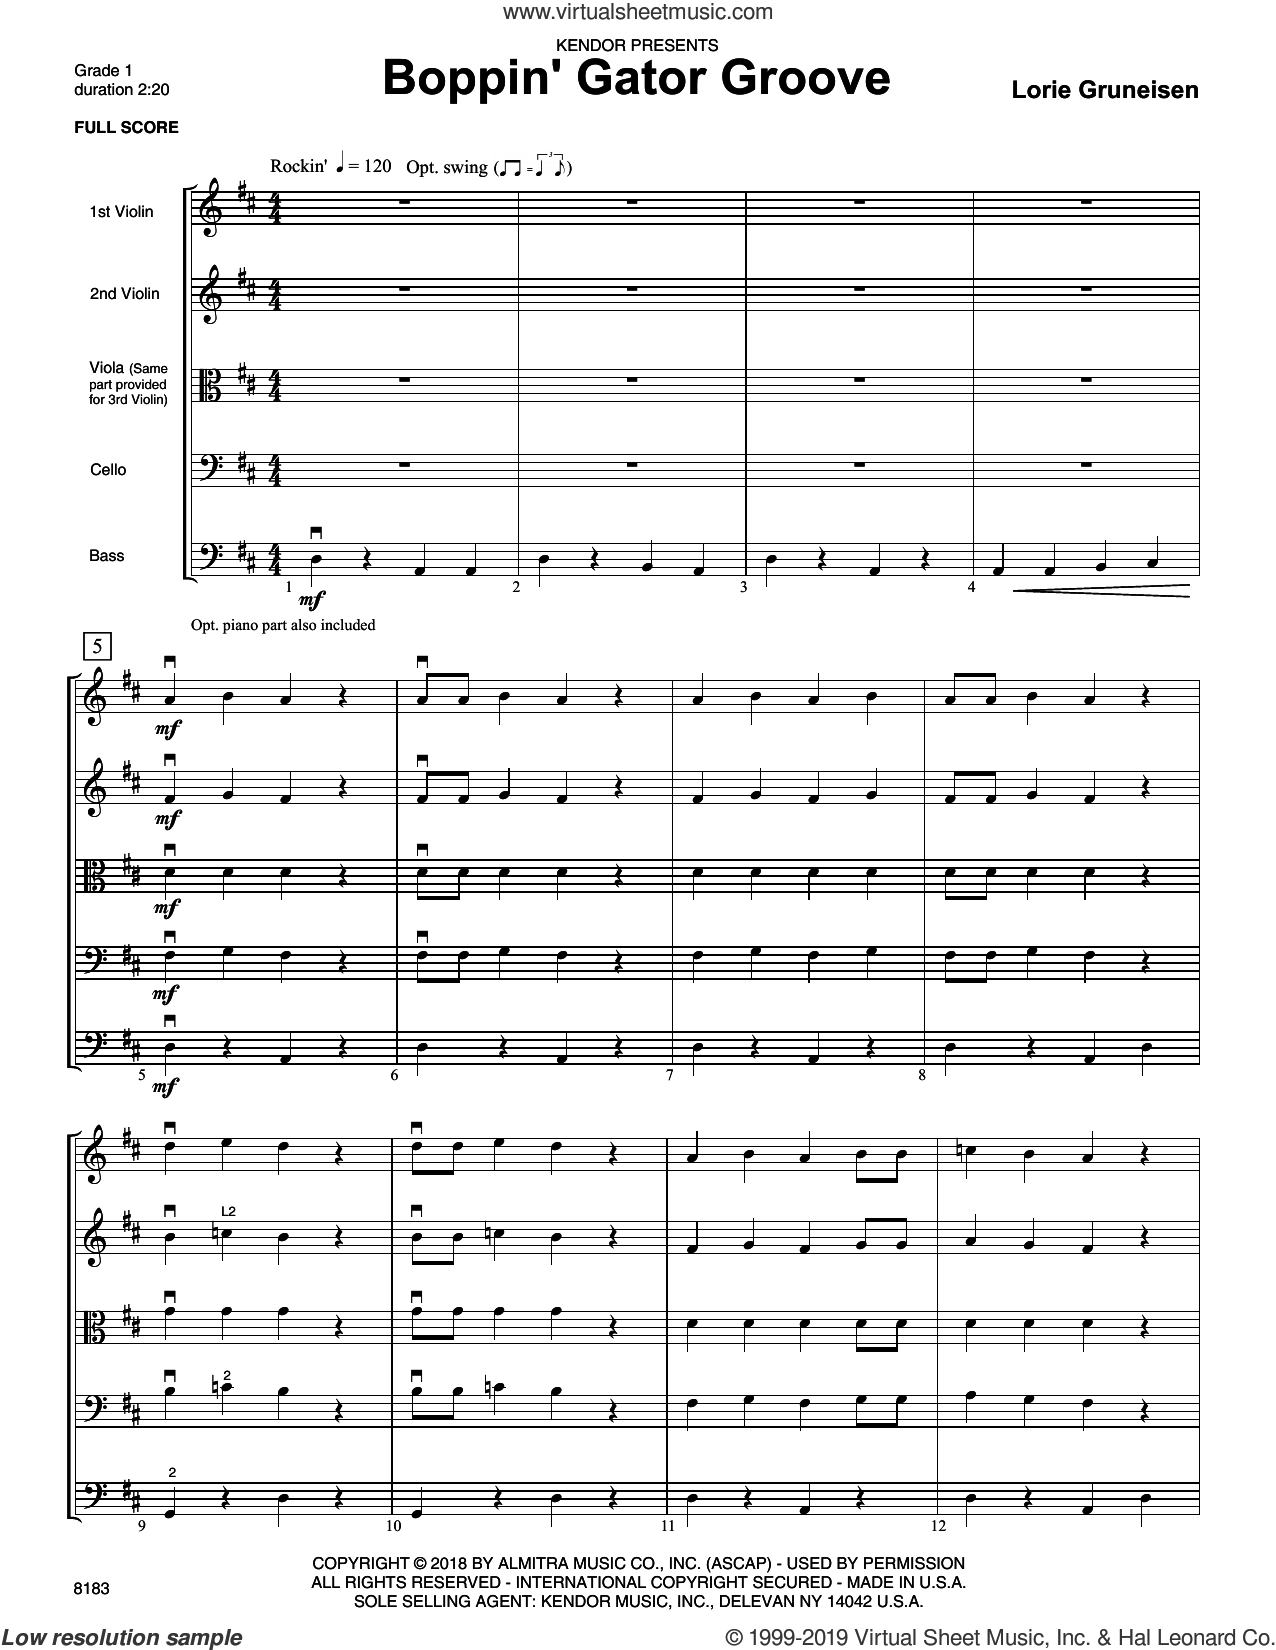 Boppin' Gator Groove (COMPLETE) sheet music for orchestra by Lorie Gruneisen, intermediate skill level